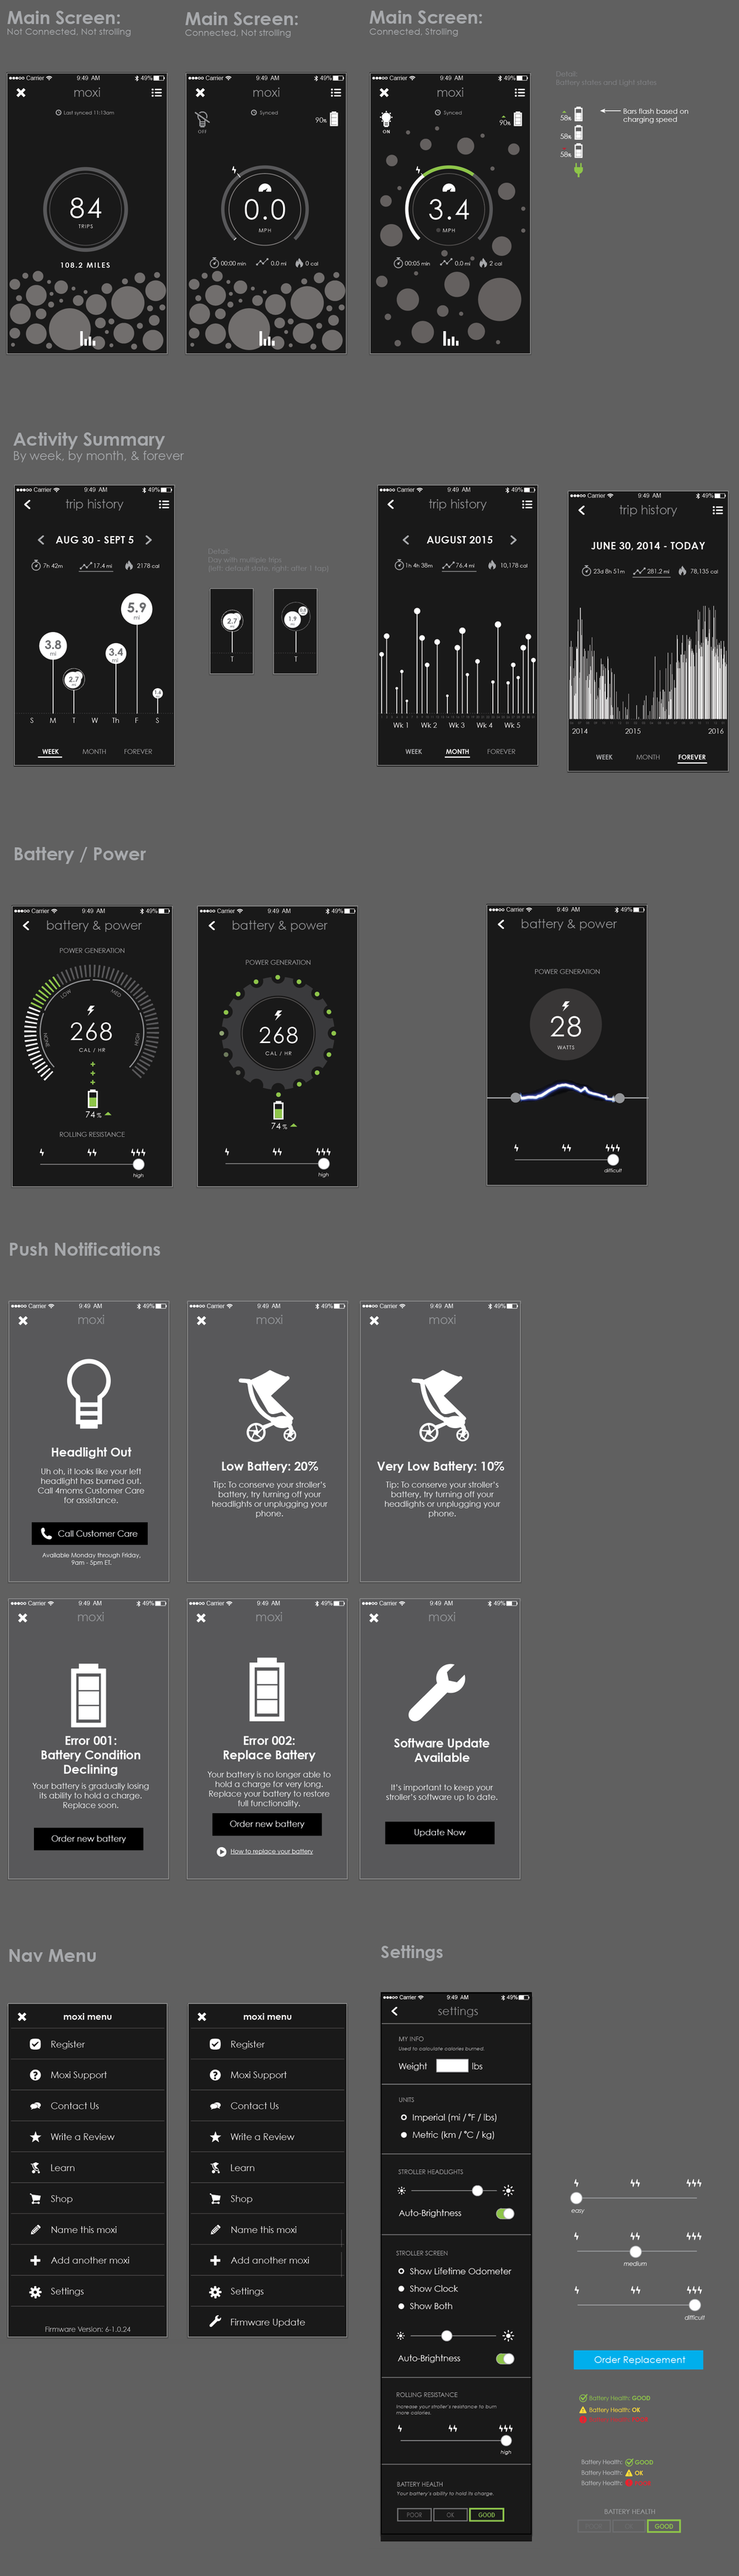 Moxi app wireframes, earlier explorations